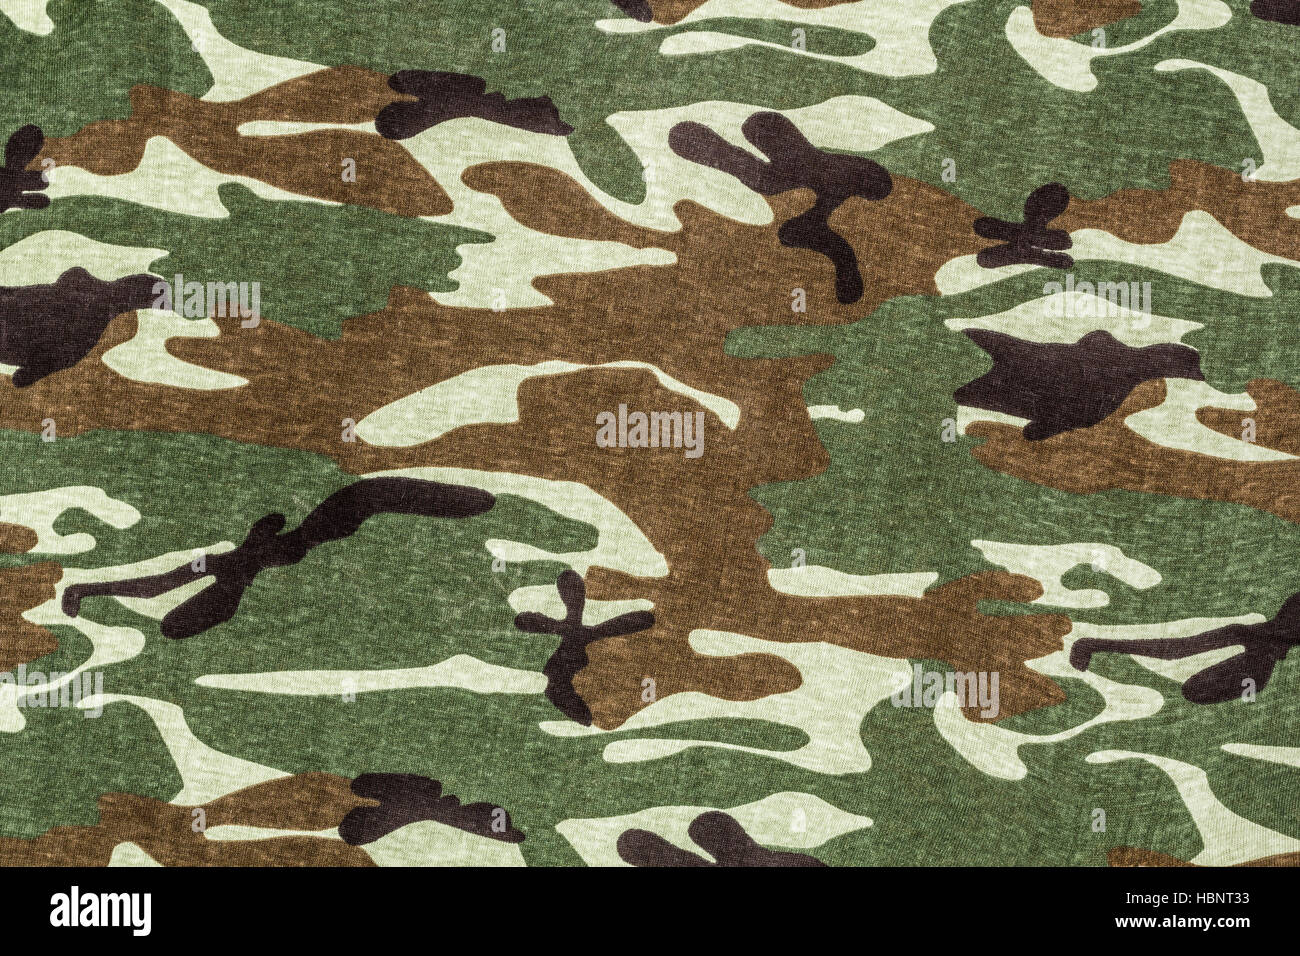 Abstract military camouflage background - Stock Image